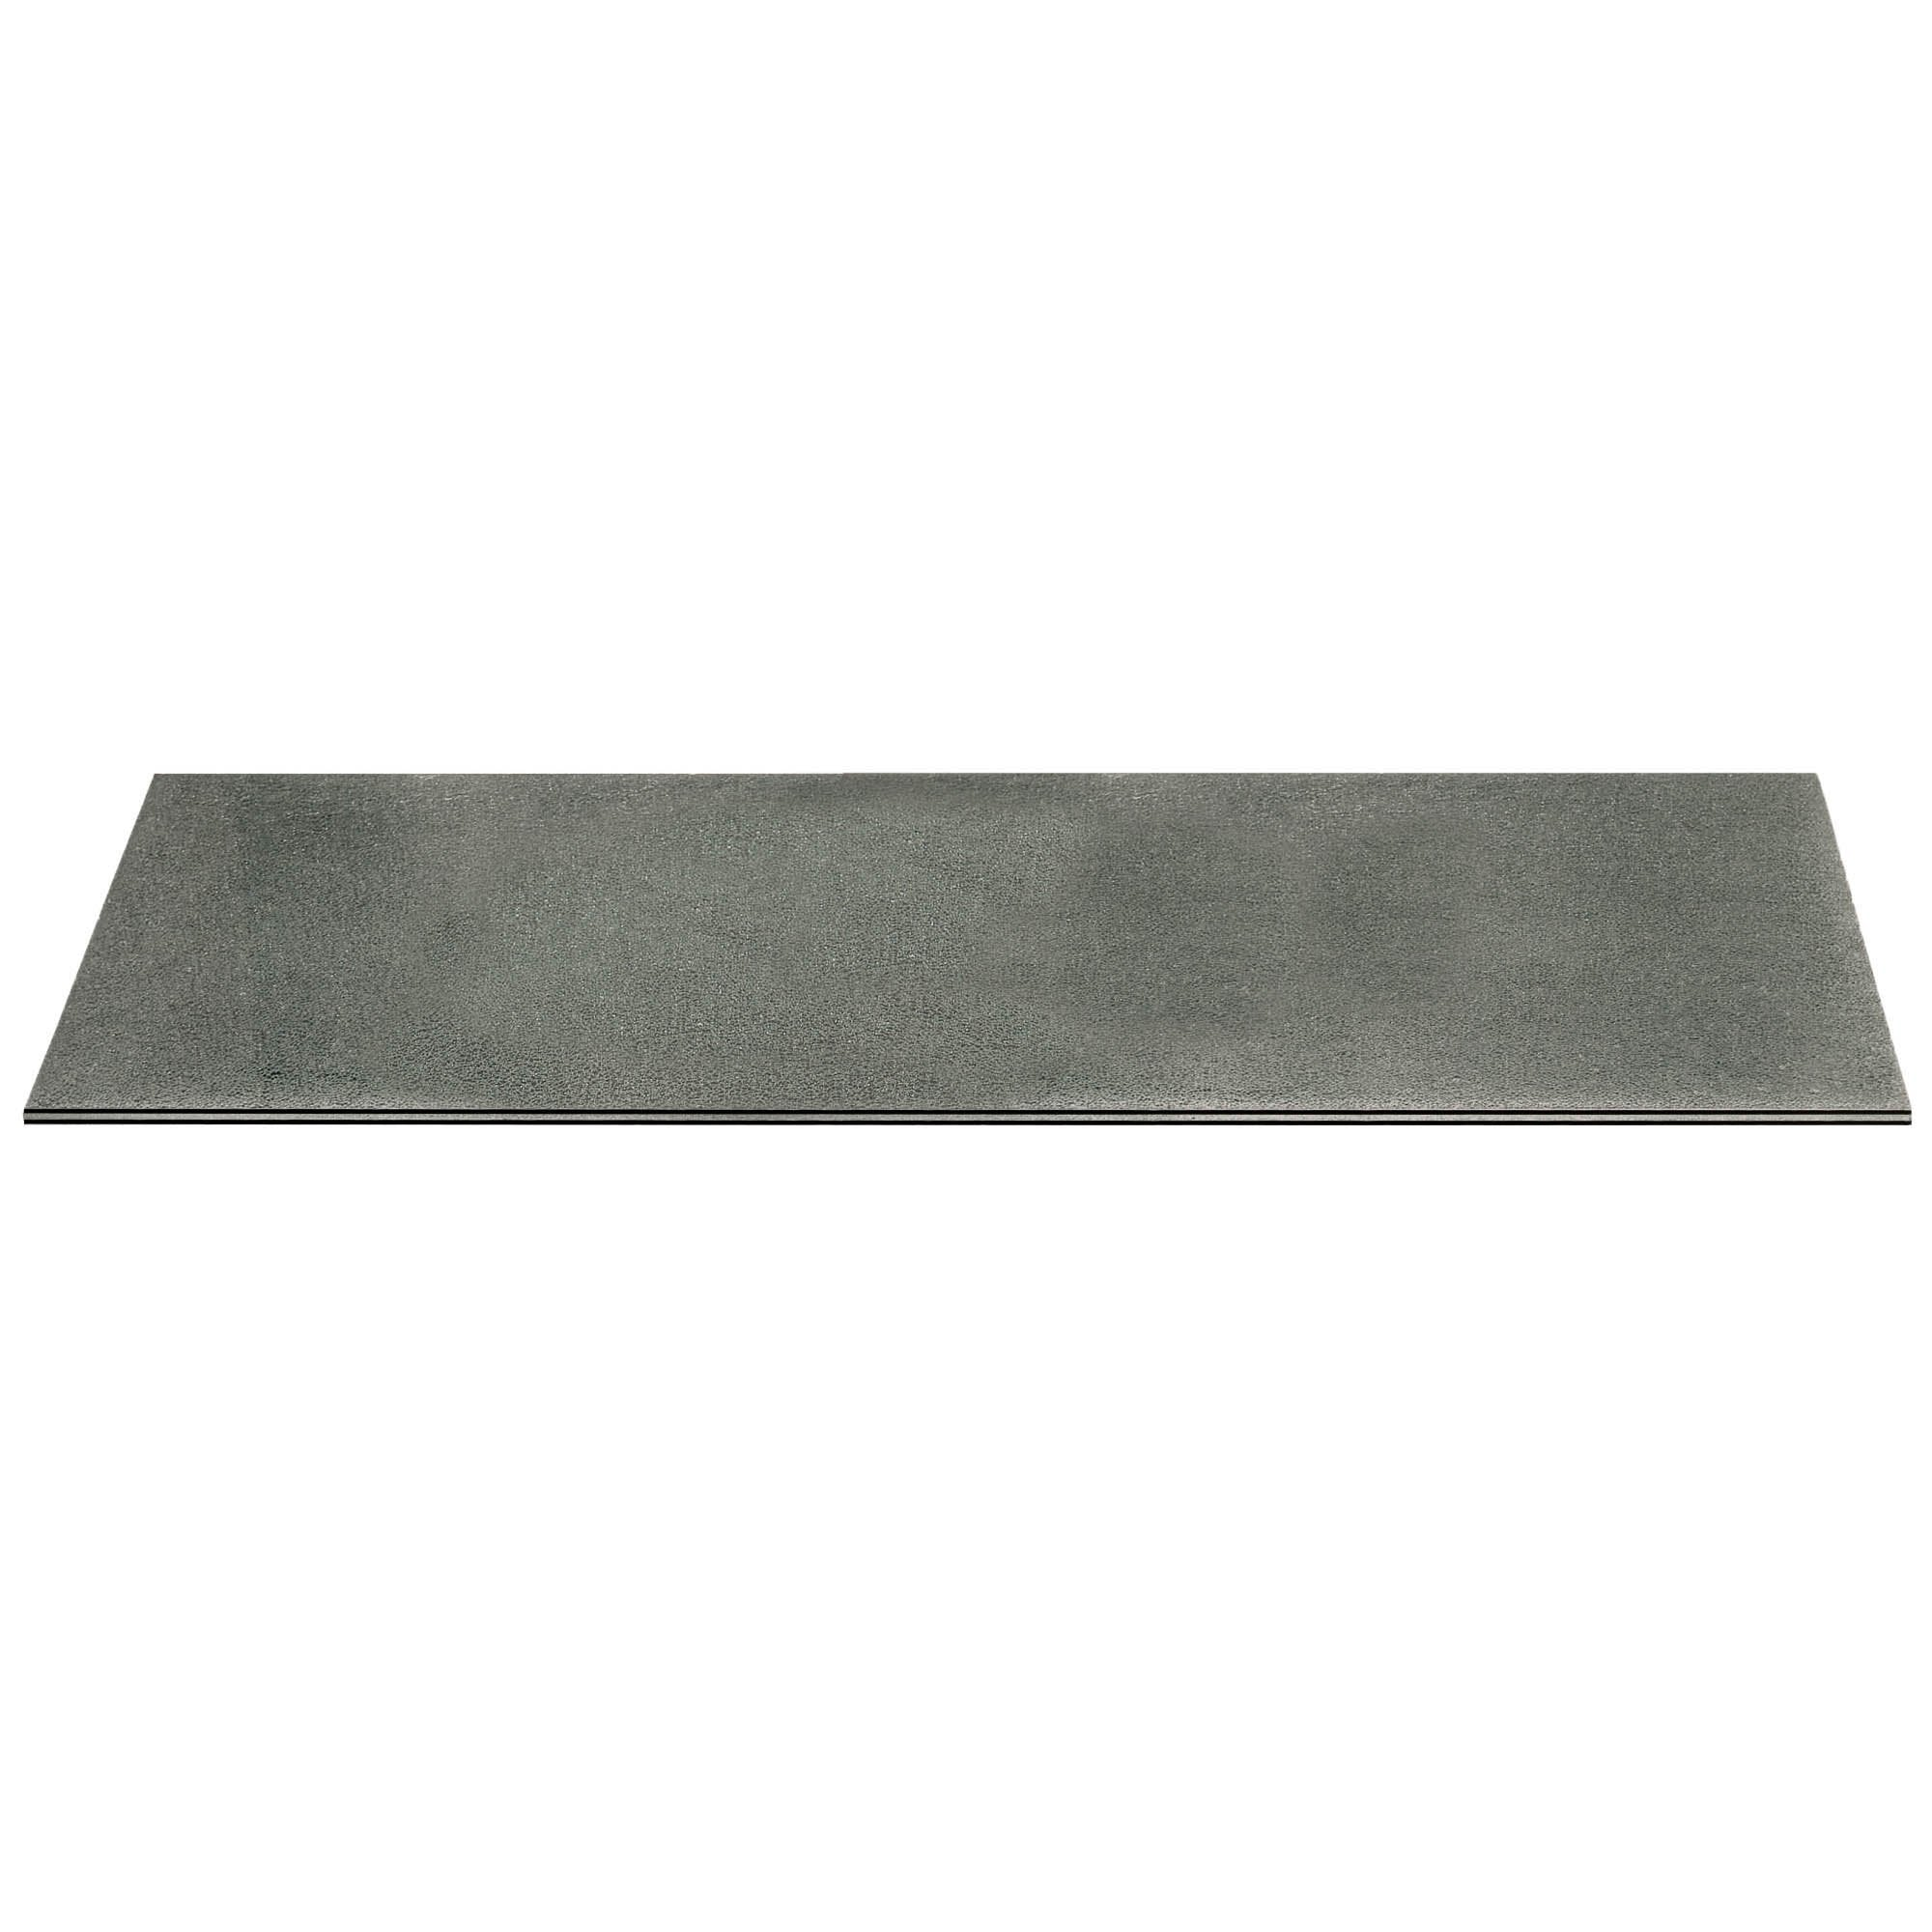 "Crackled 59"" x 20"" Console Table Top in Smoke Grey"